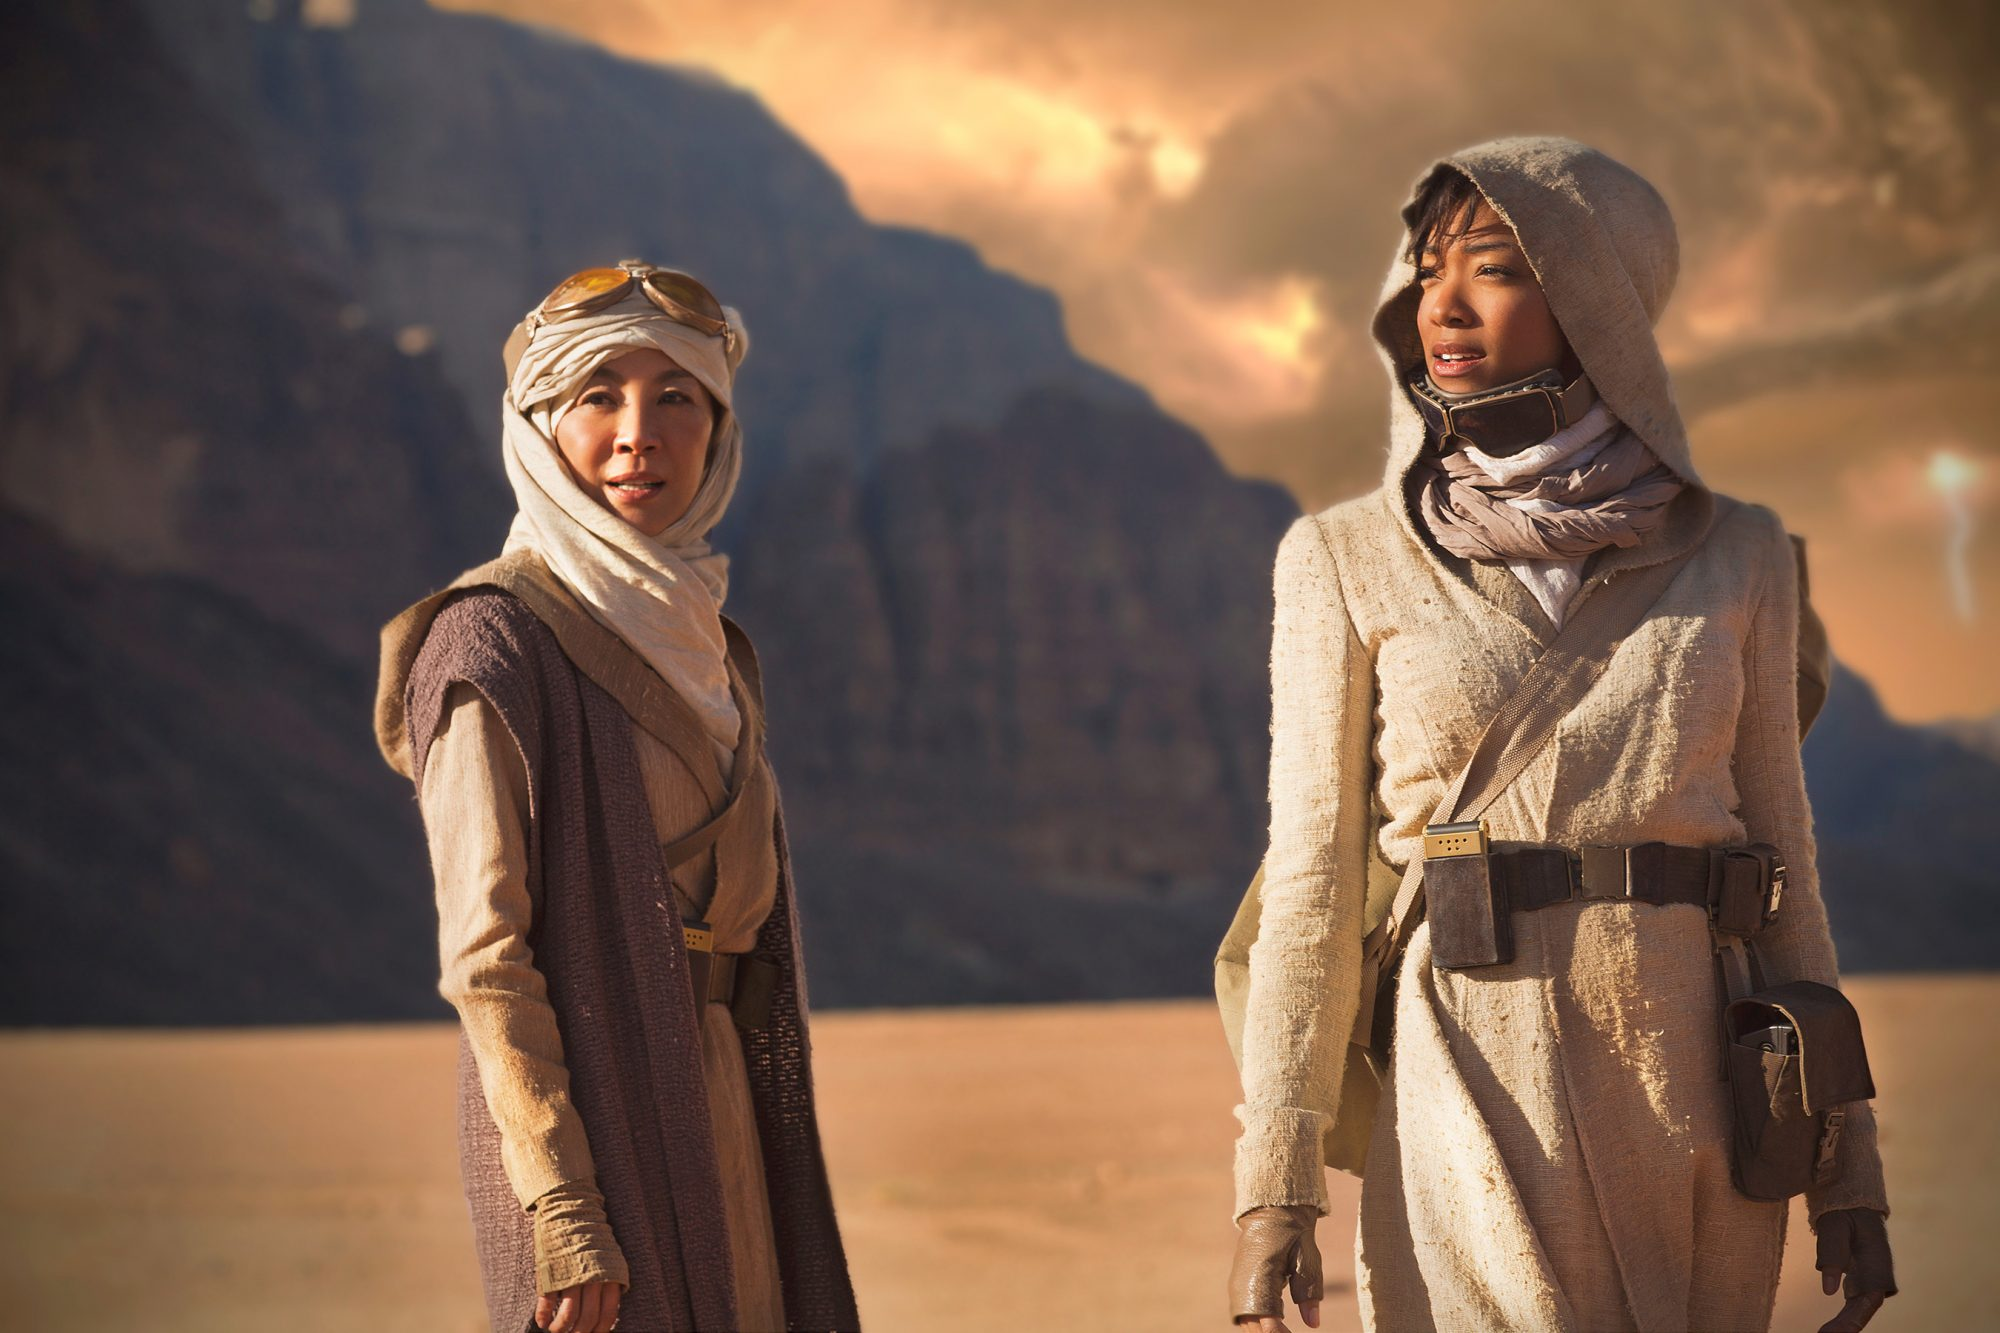 Michelle Yeoh as Captain Philippa Georgiou and Sonequa Martin-Green as First Officer Michael Burnham on a mission that was filmed in Jordan.